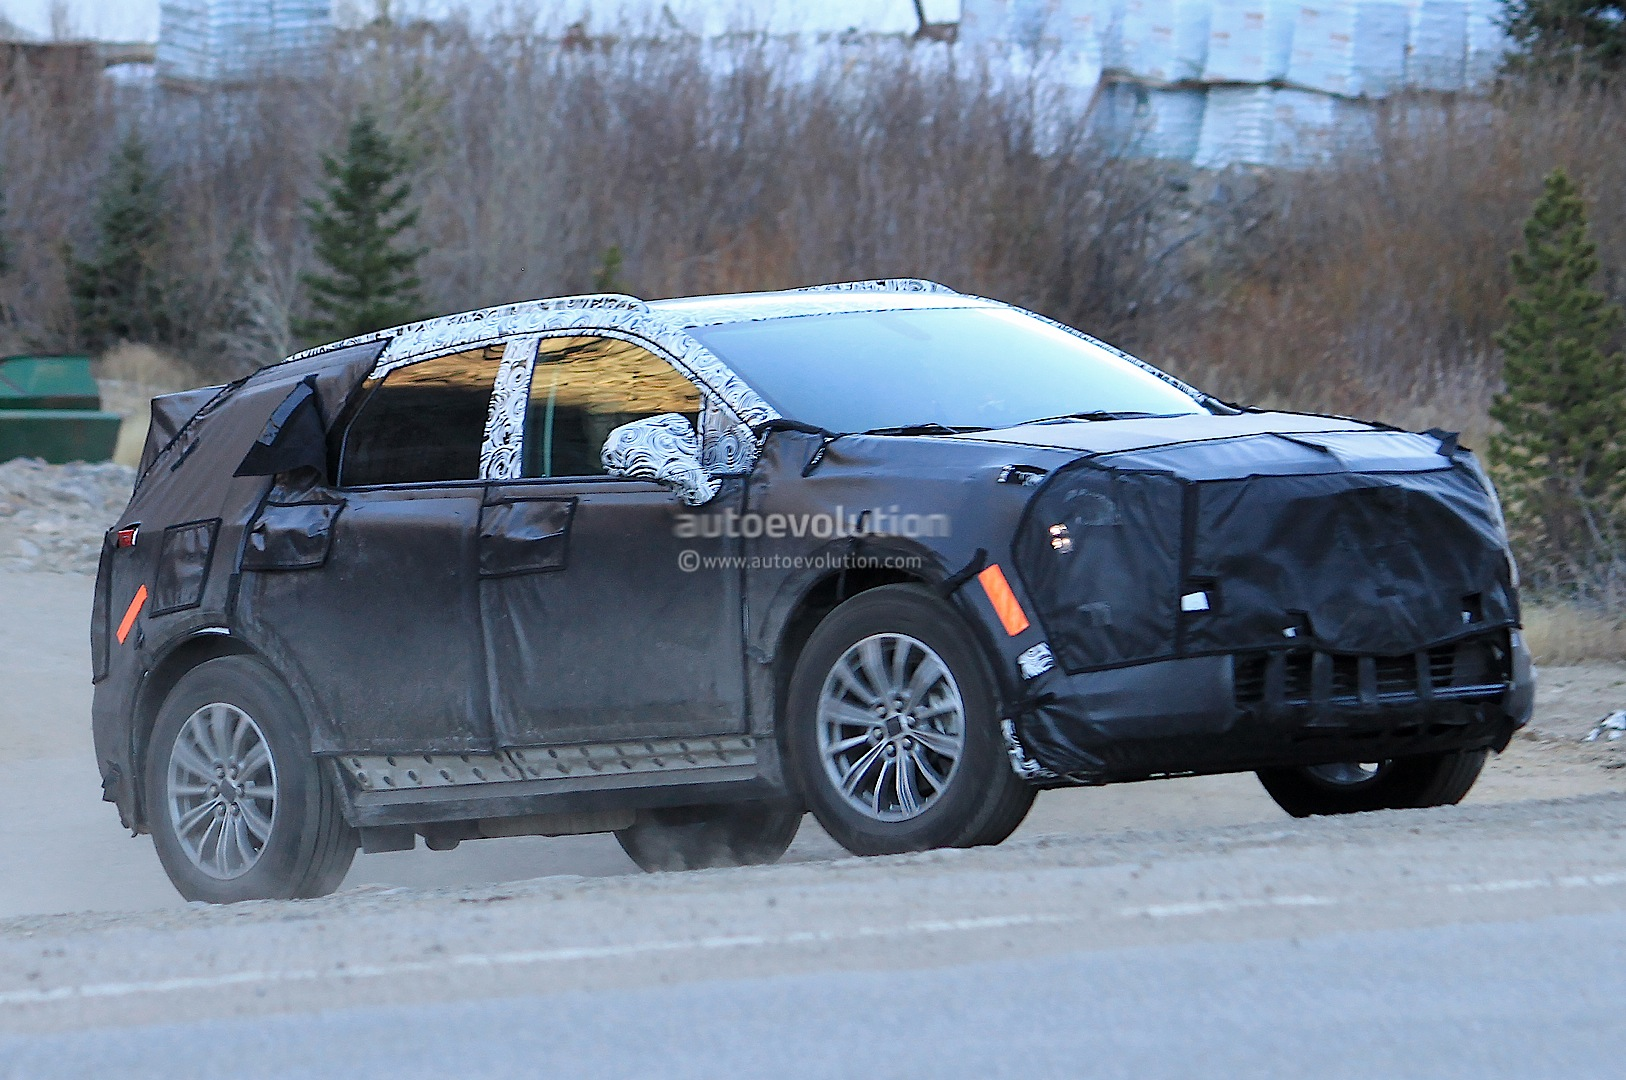 2016 Cadillac XT5 Spied, Will Replace the SRX - autoevolution